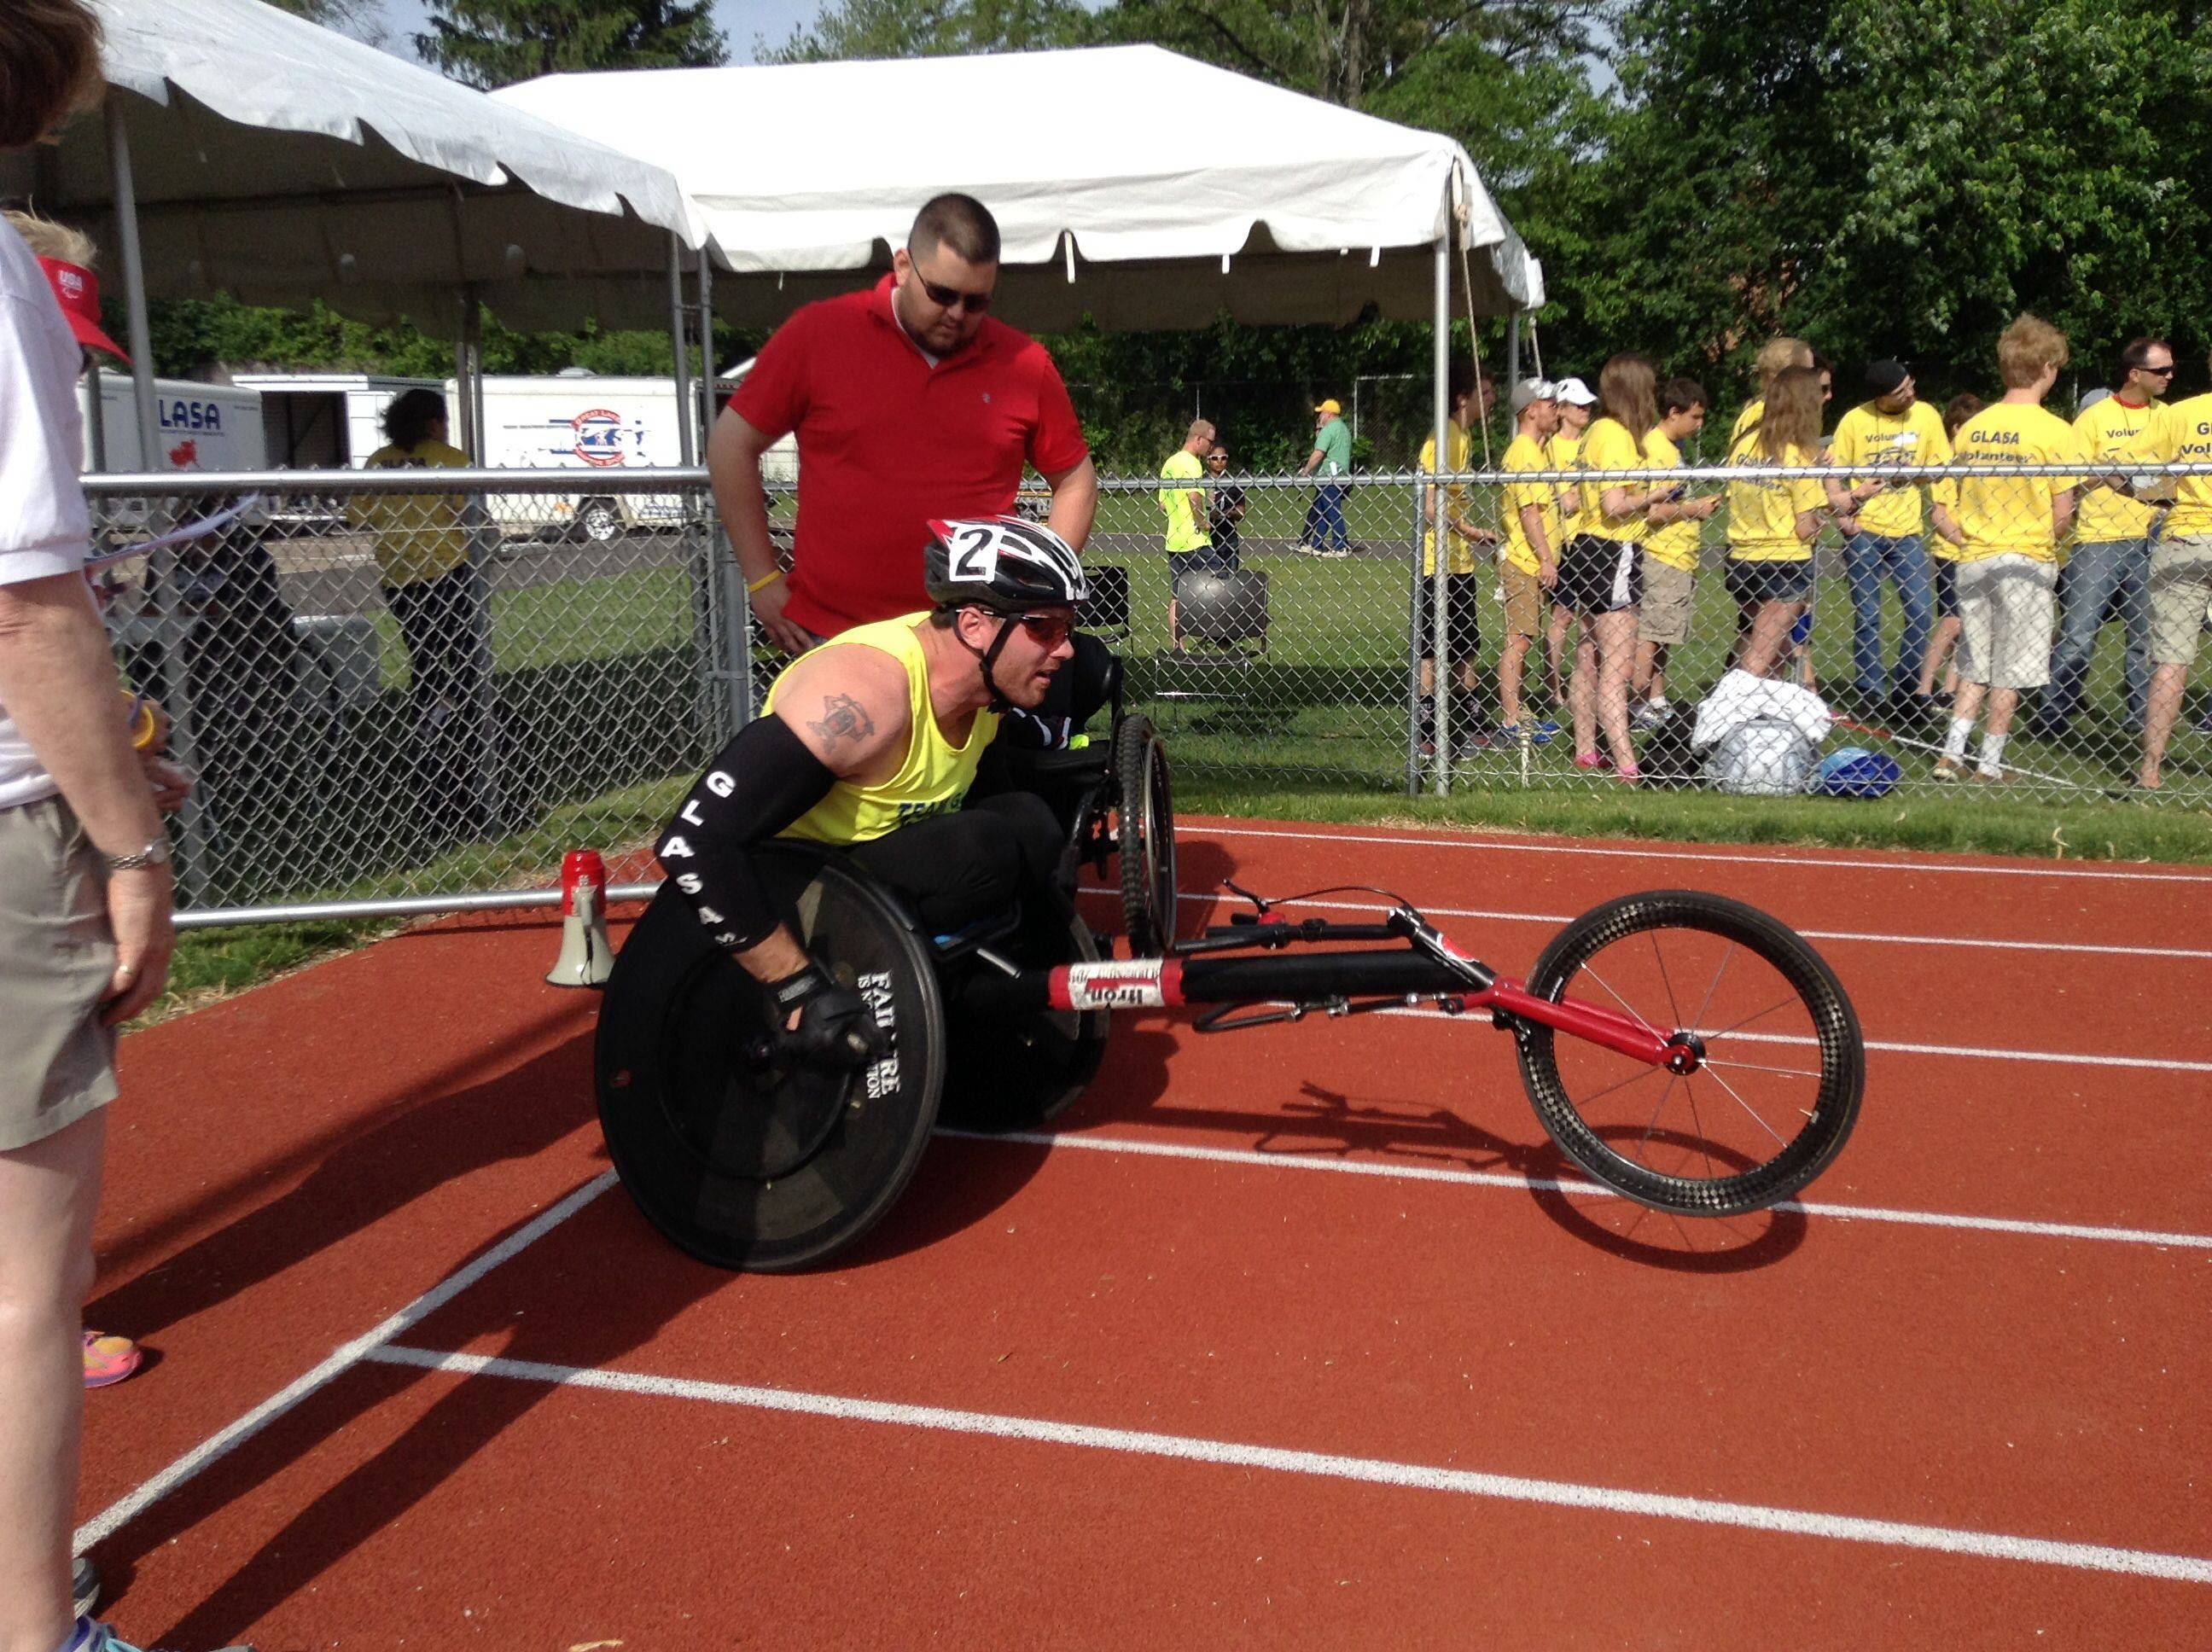 Bob Swanson of Round Lake prepares to compete at the Great Lakes Adaptive Sports Association regional games at Lake Forest High School Sunday.